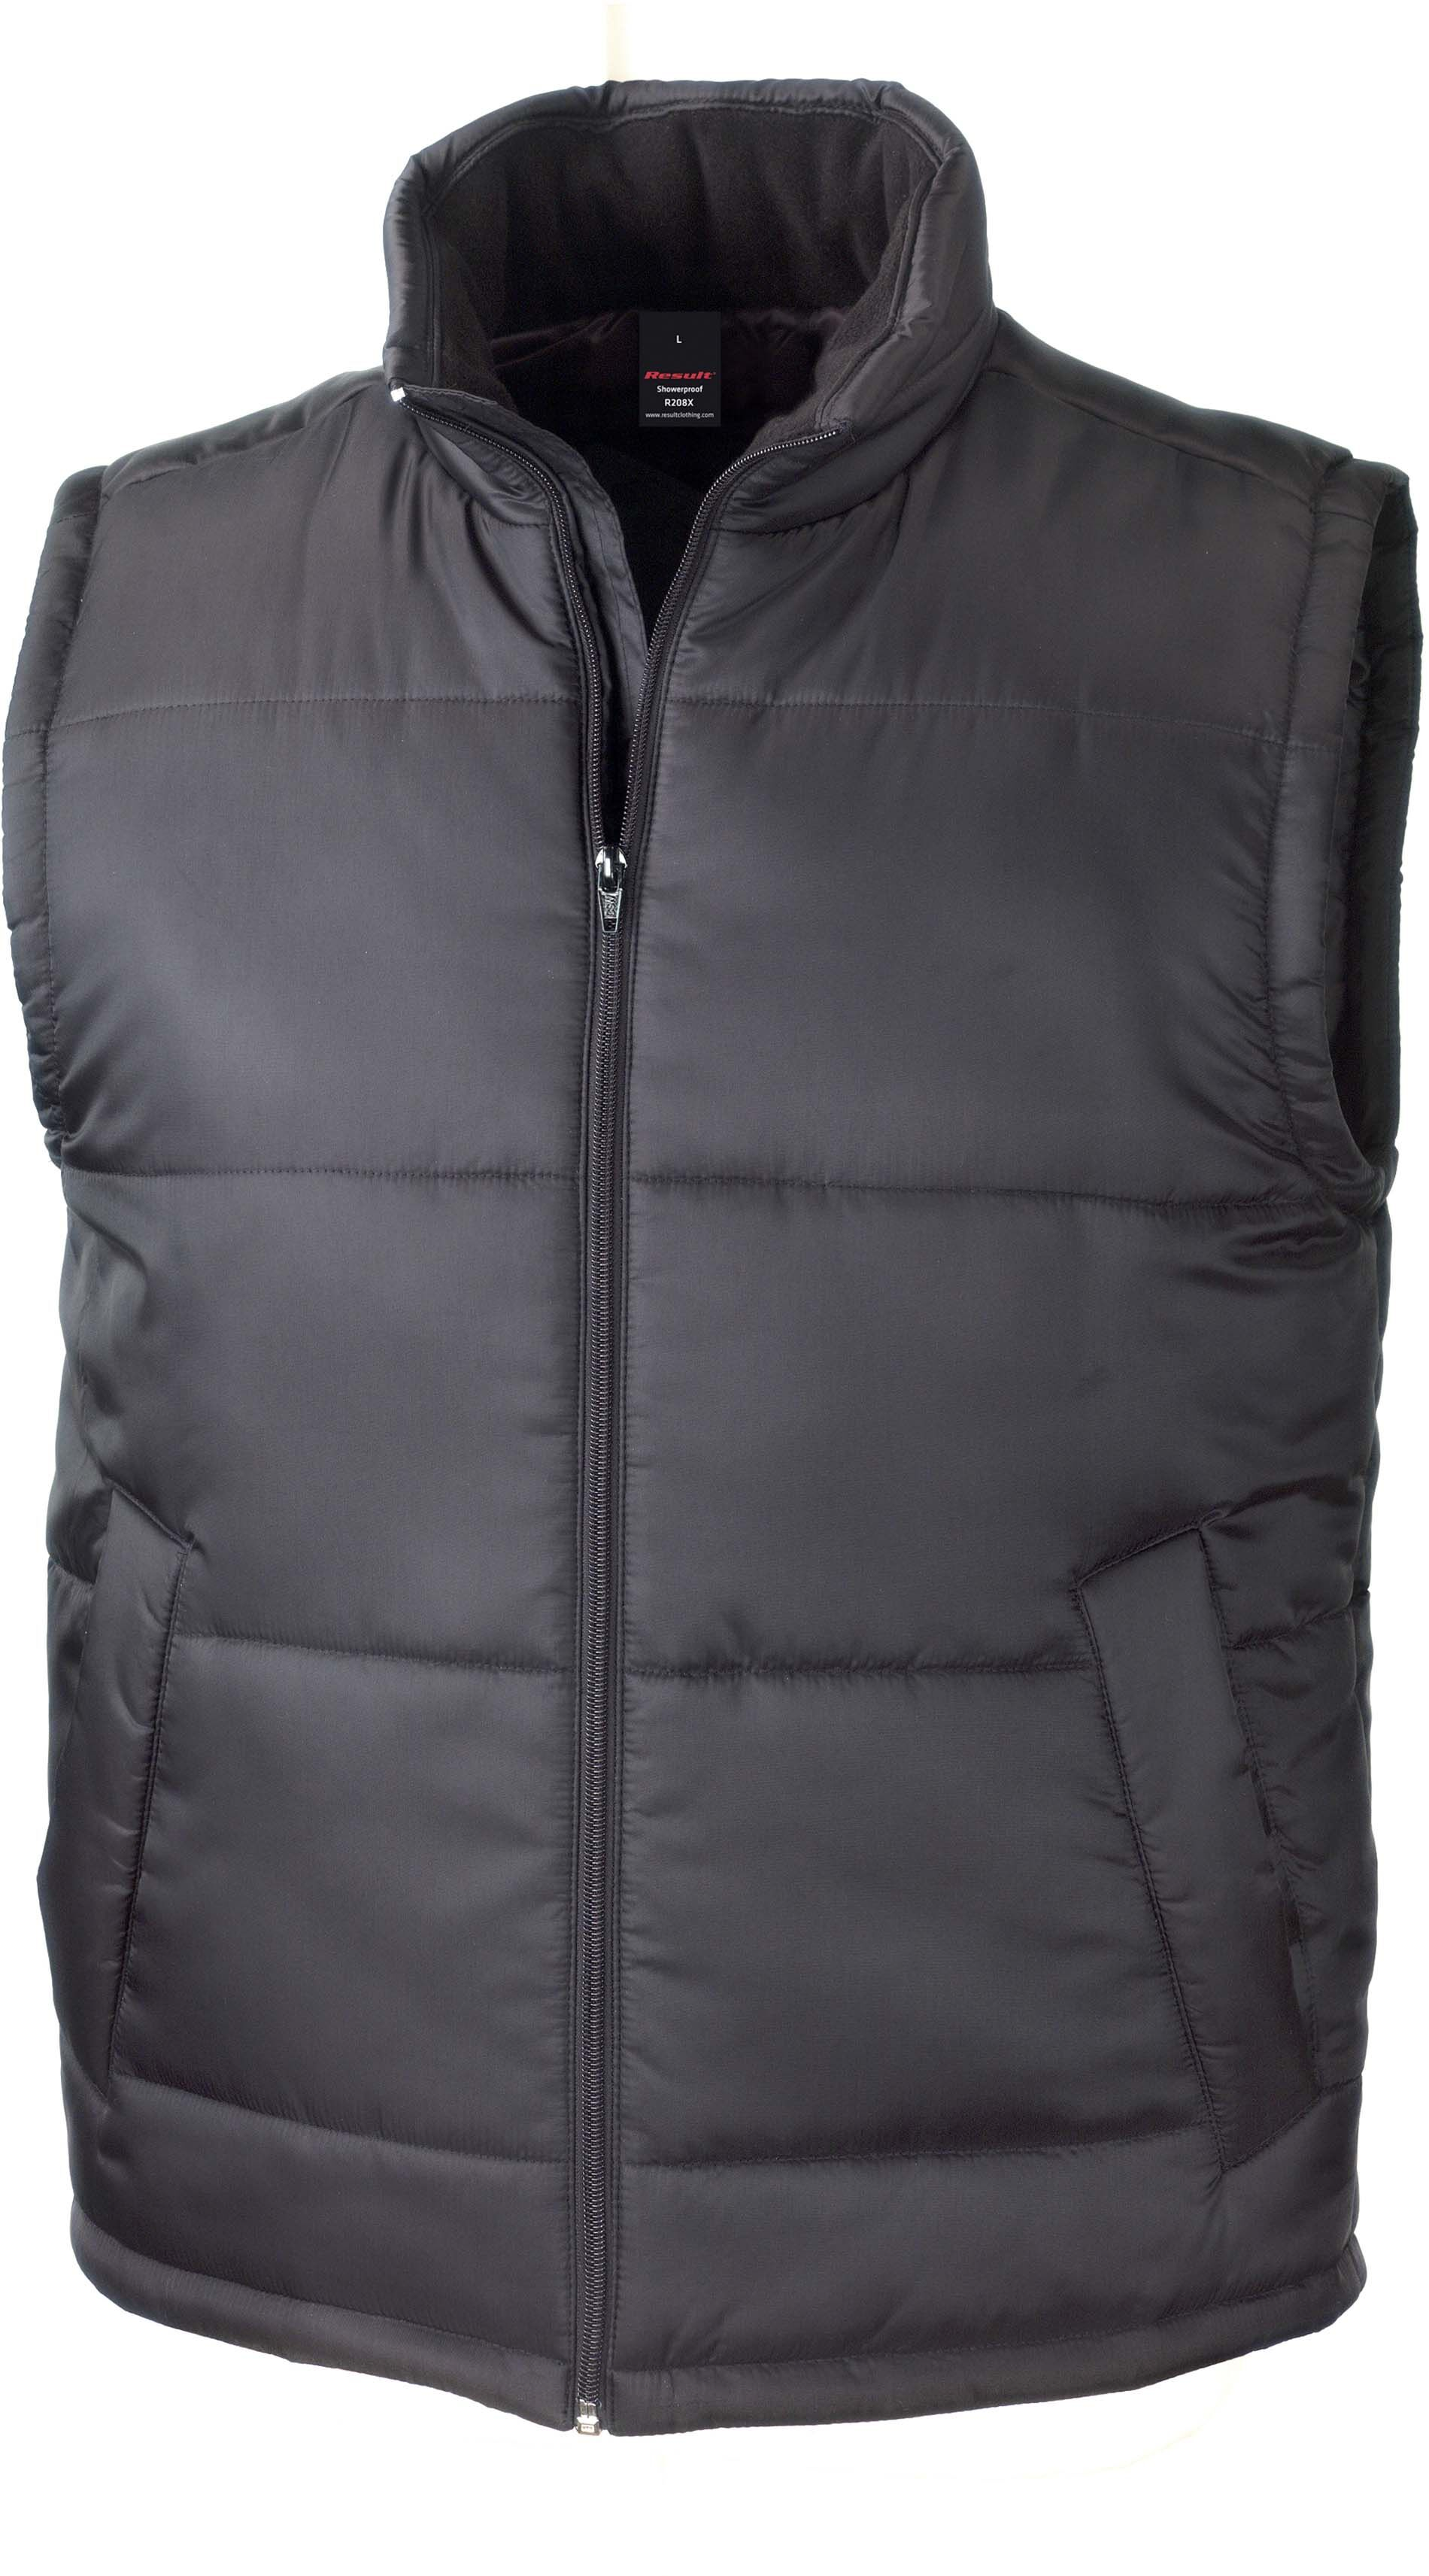 BODYWARMER CORE Black